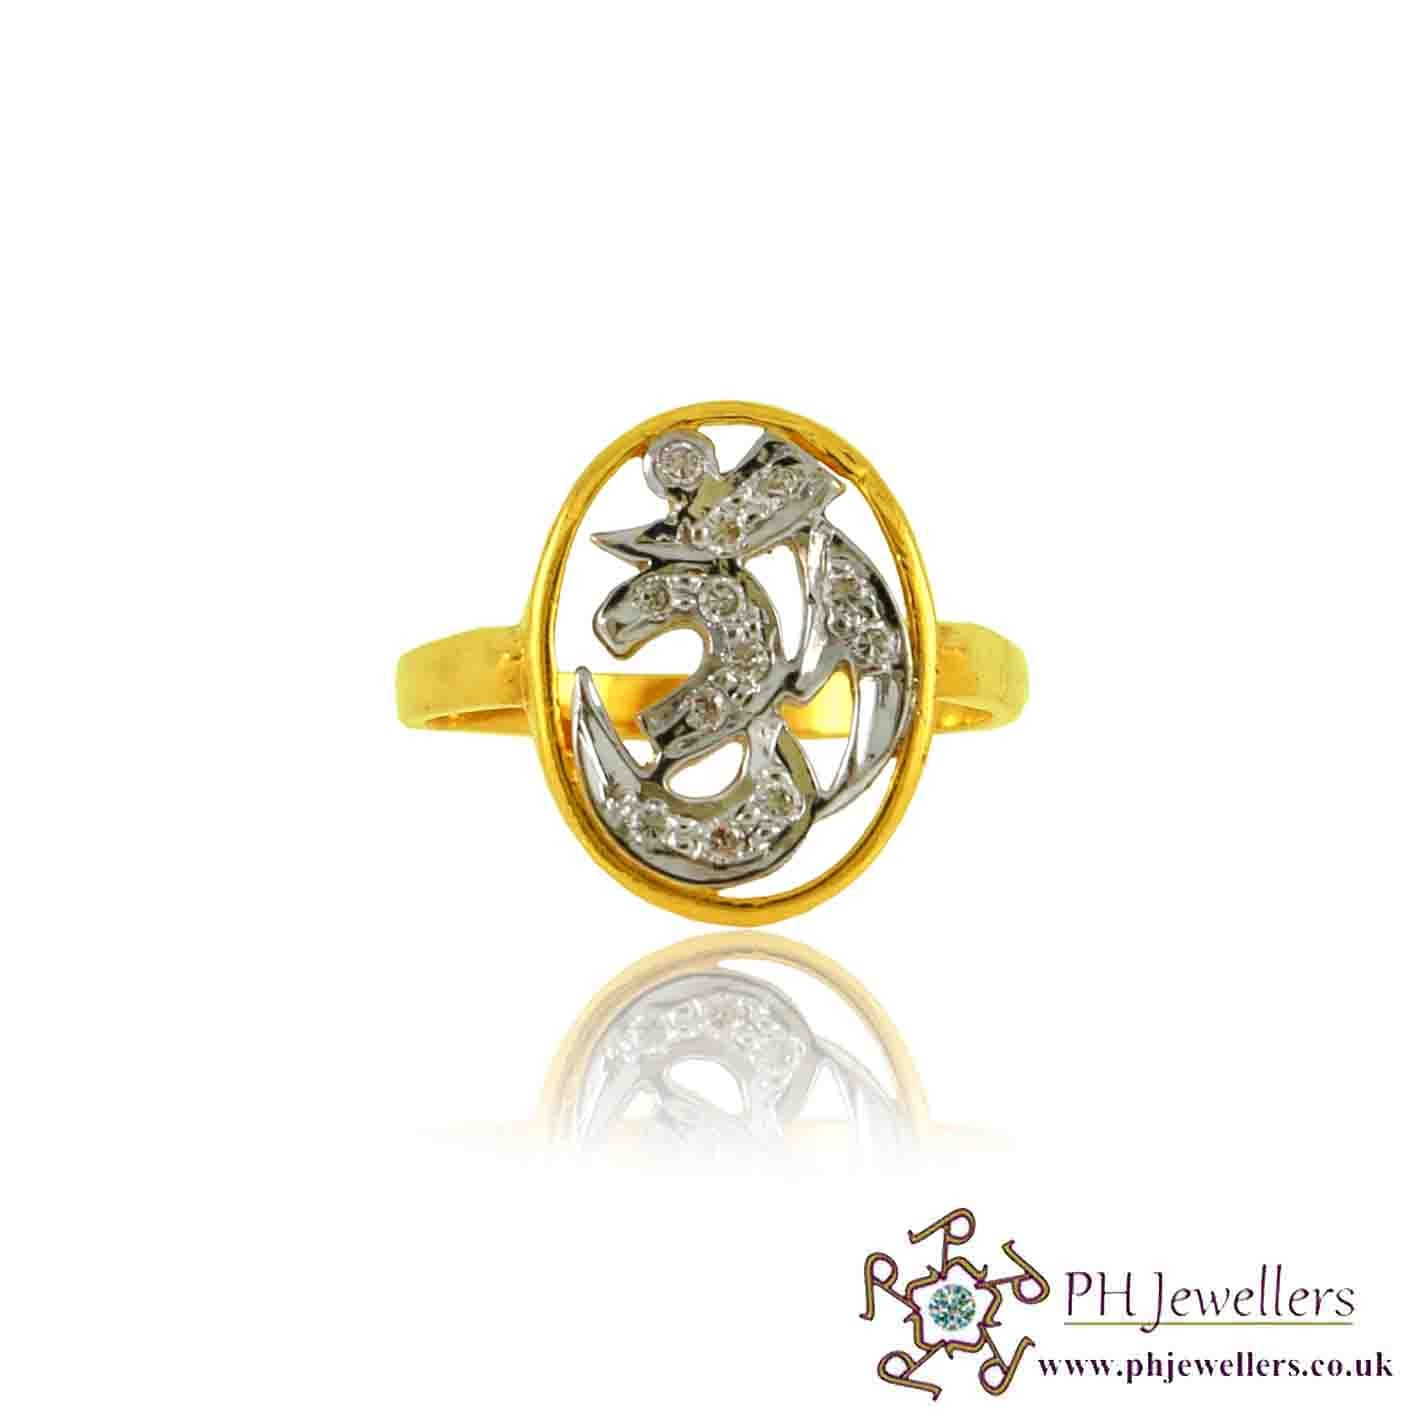 pin designs jewellery rings ring pinterest beautiful gold